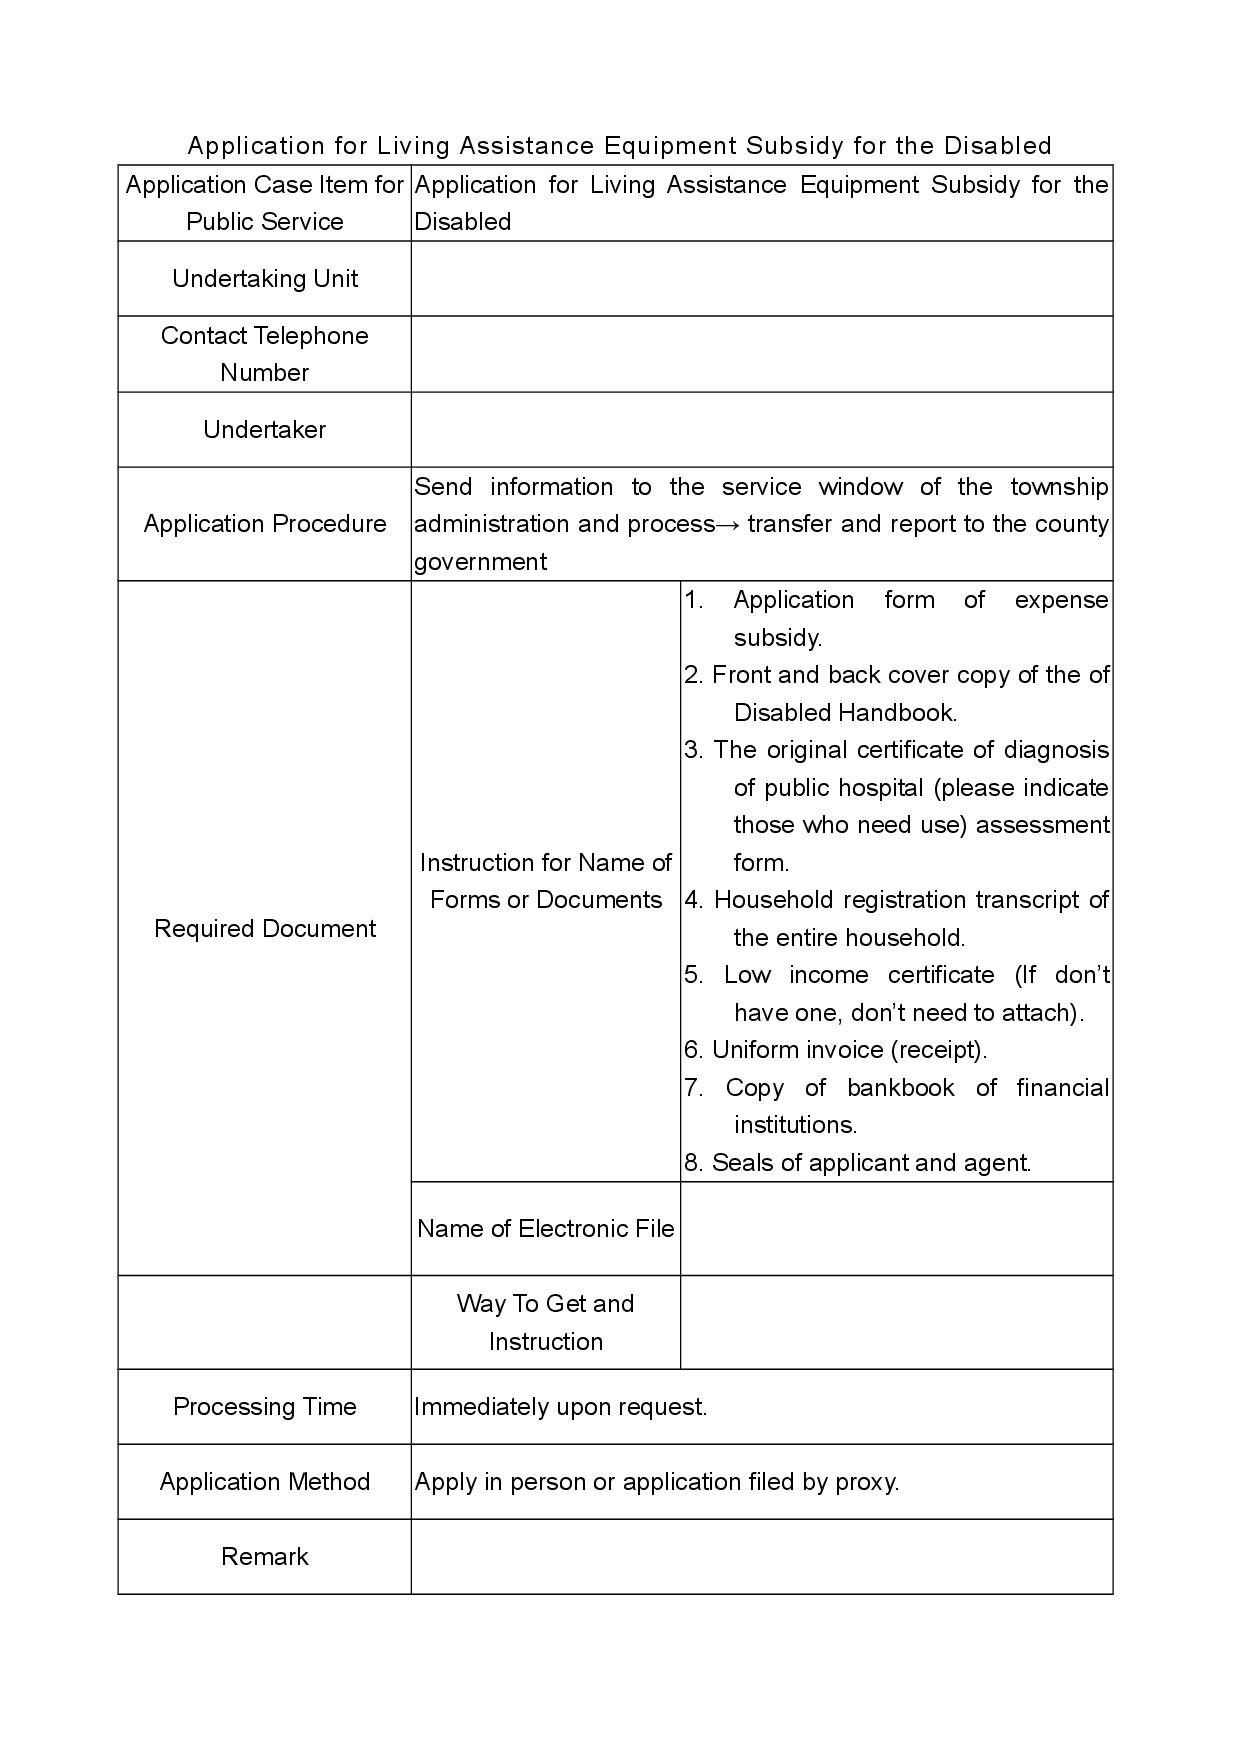 Application for Living Assistance Equipment Subsidy for the Disable